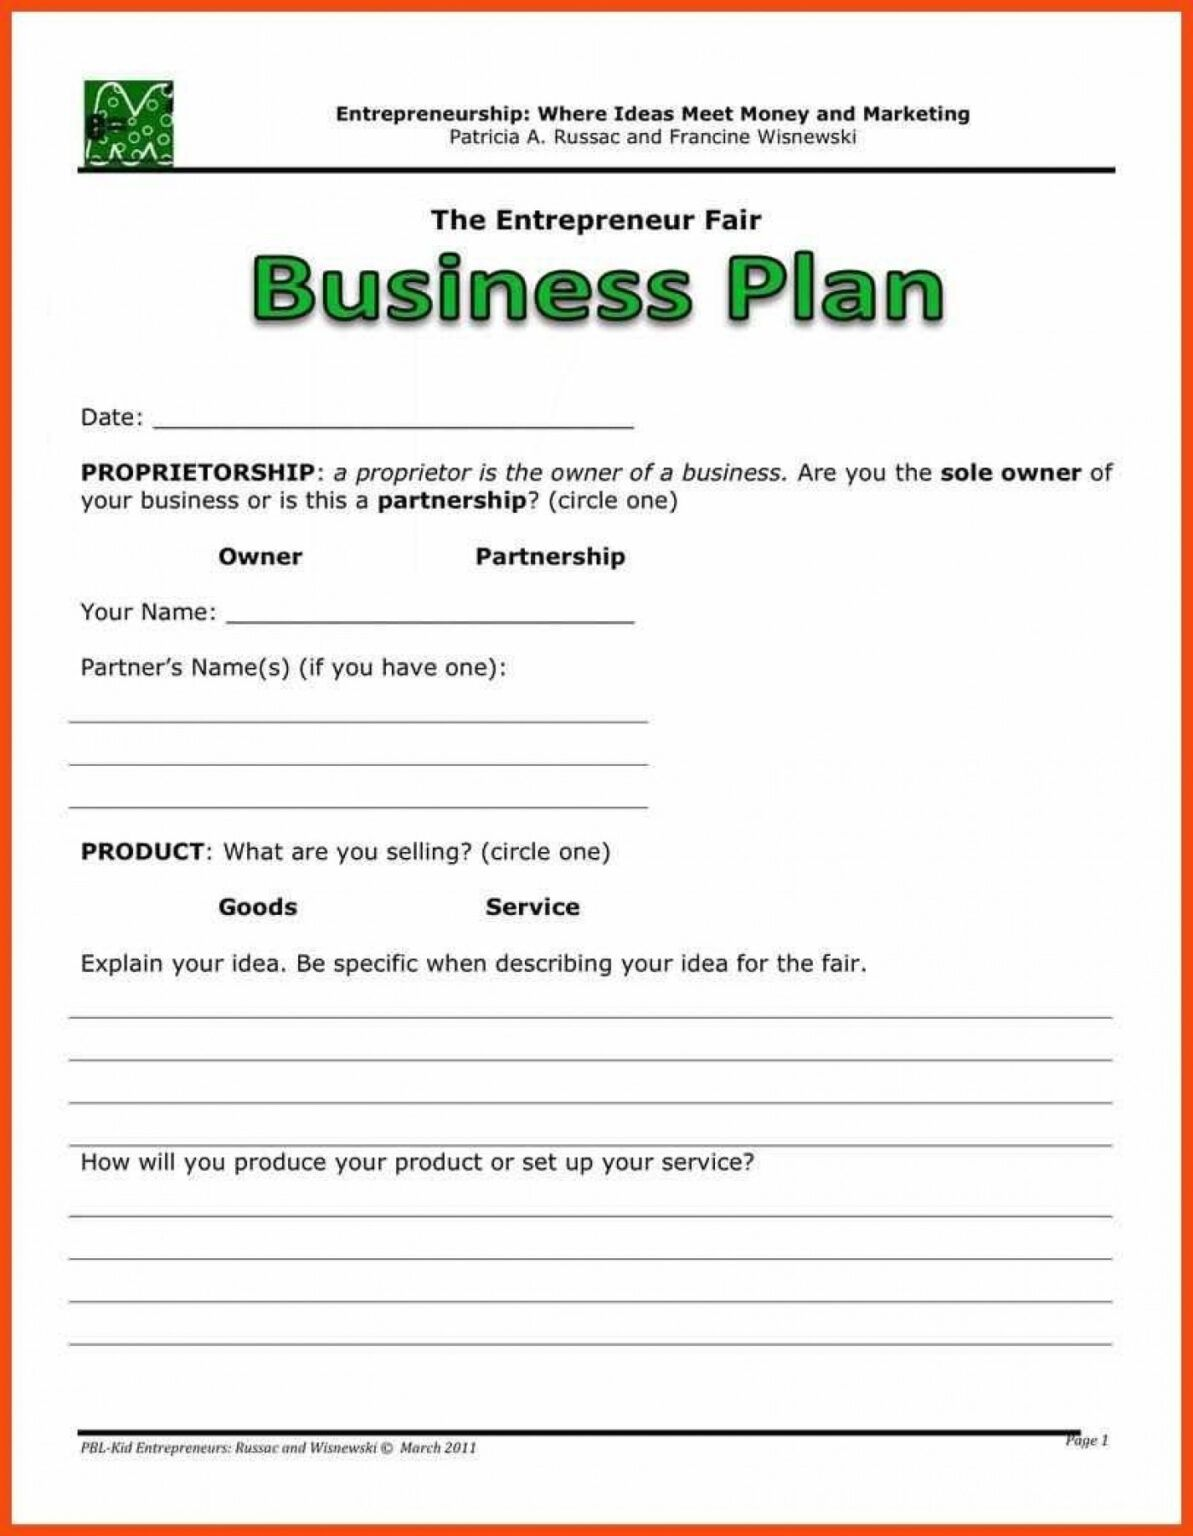 022 Business Plan Template Free Word Download within